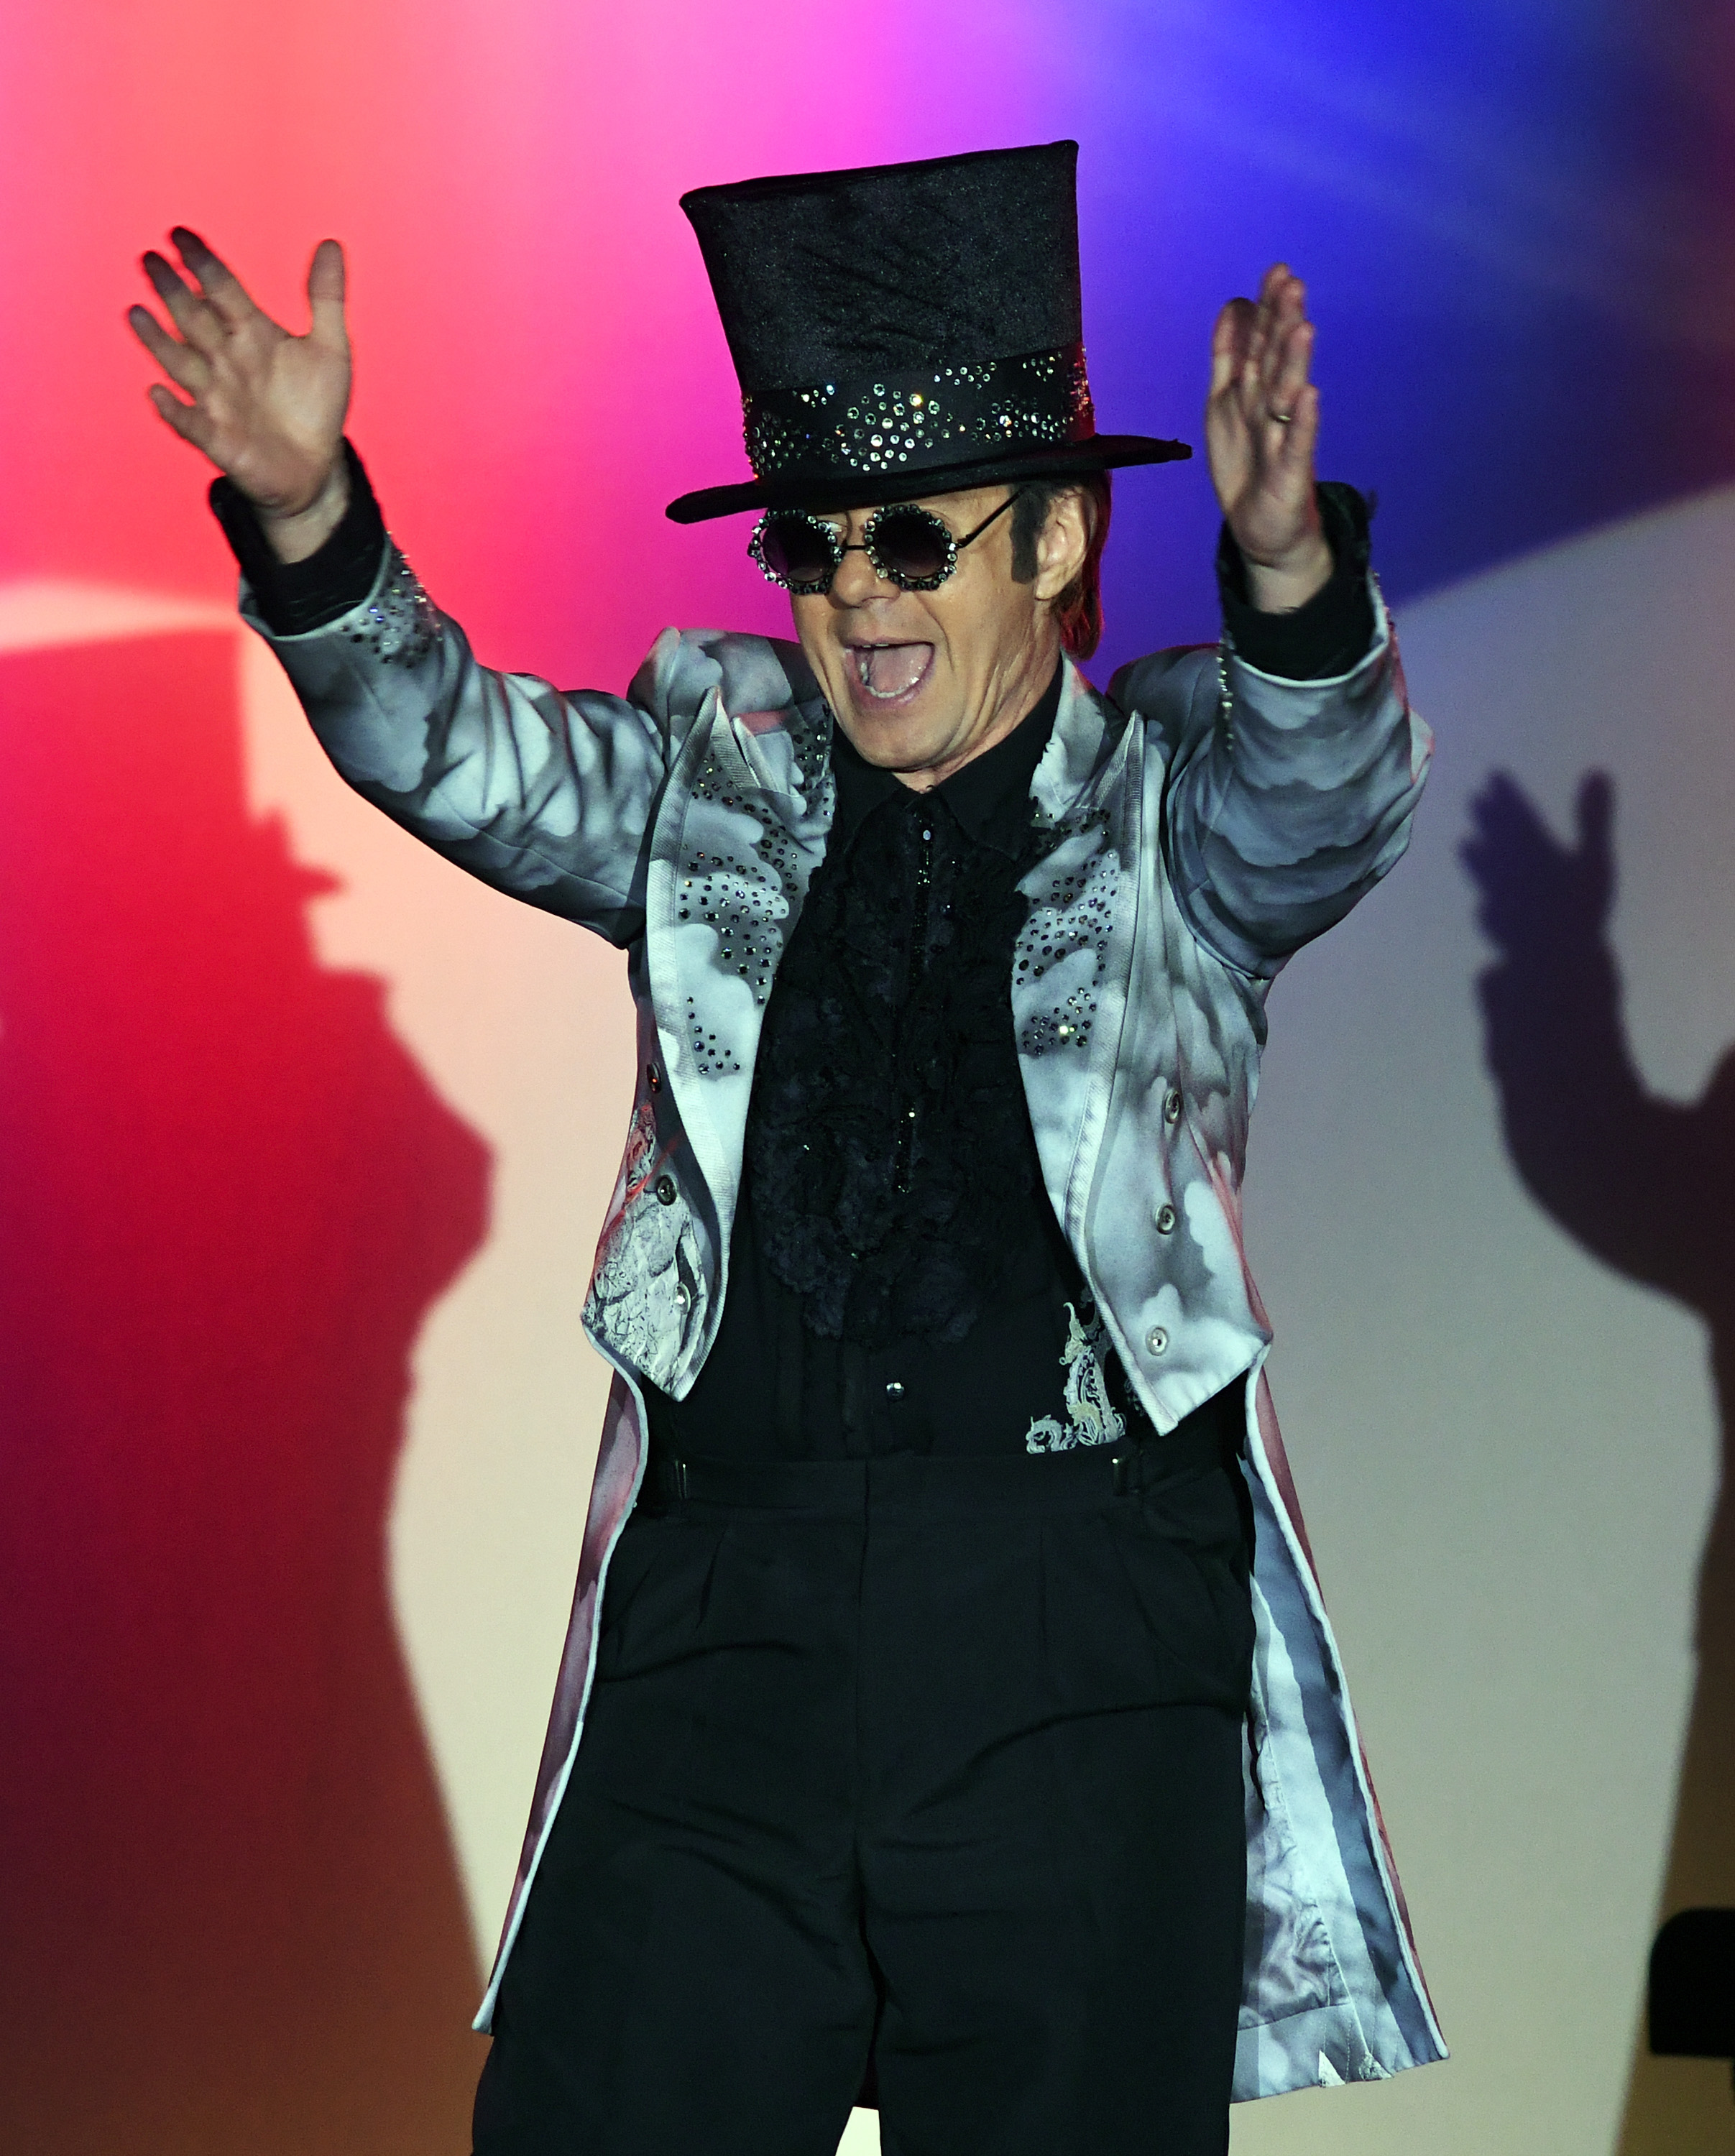 If you thought Slash was the only rock star to perfectly pull off a top hat, you've clearly never seen this photo.